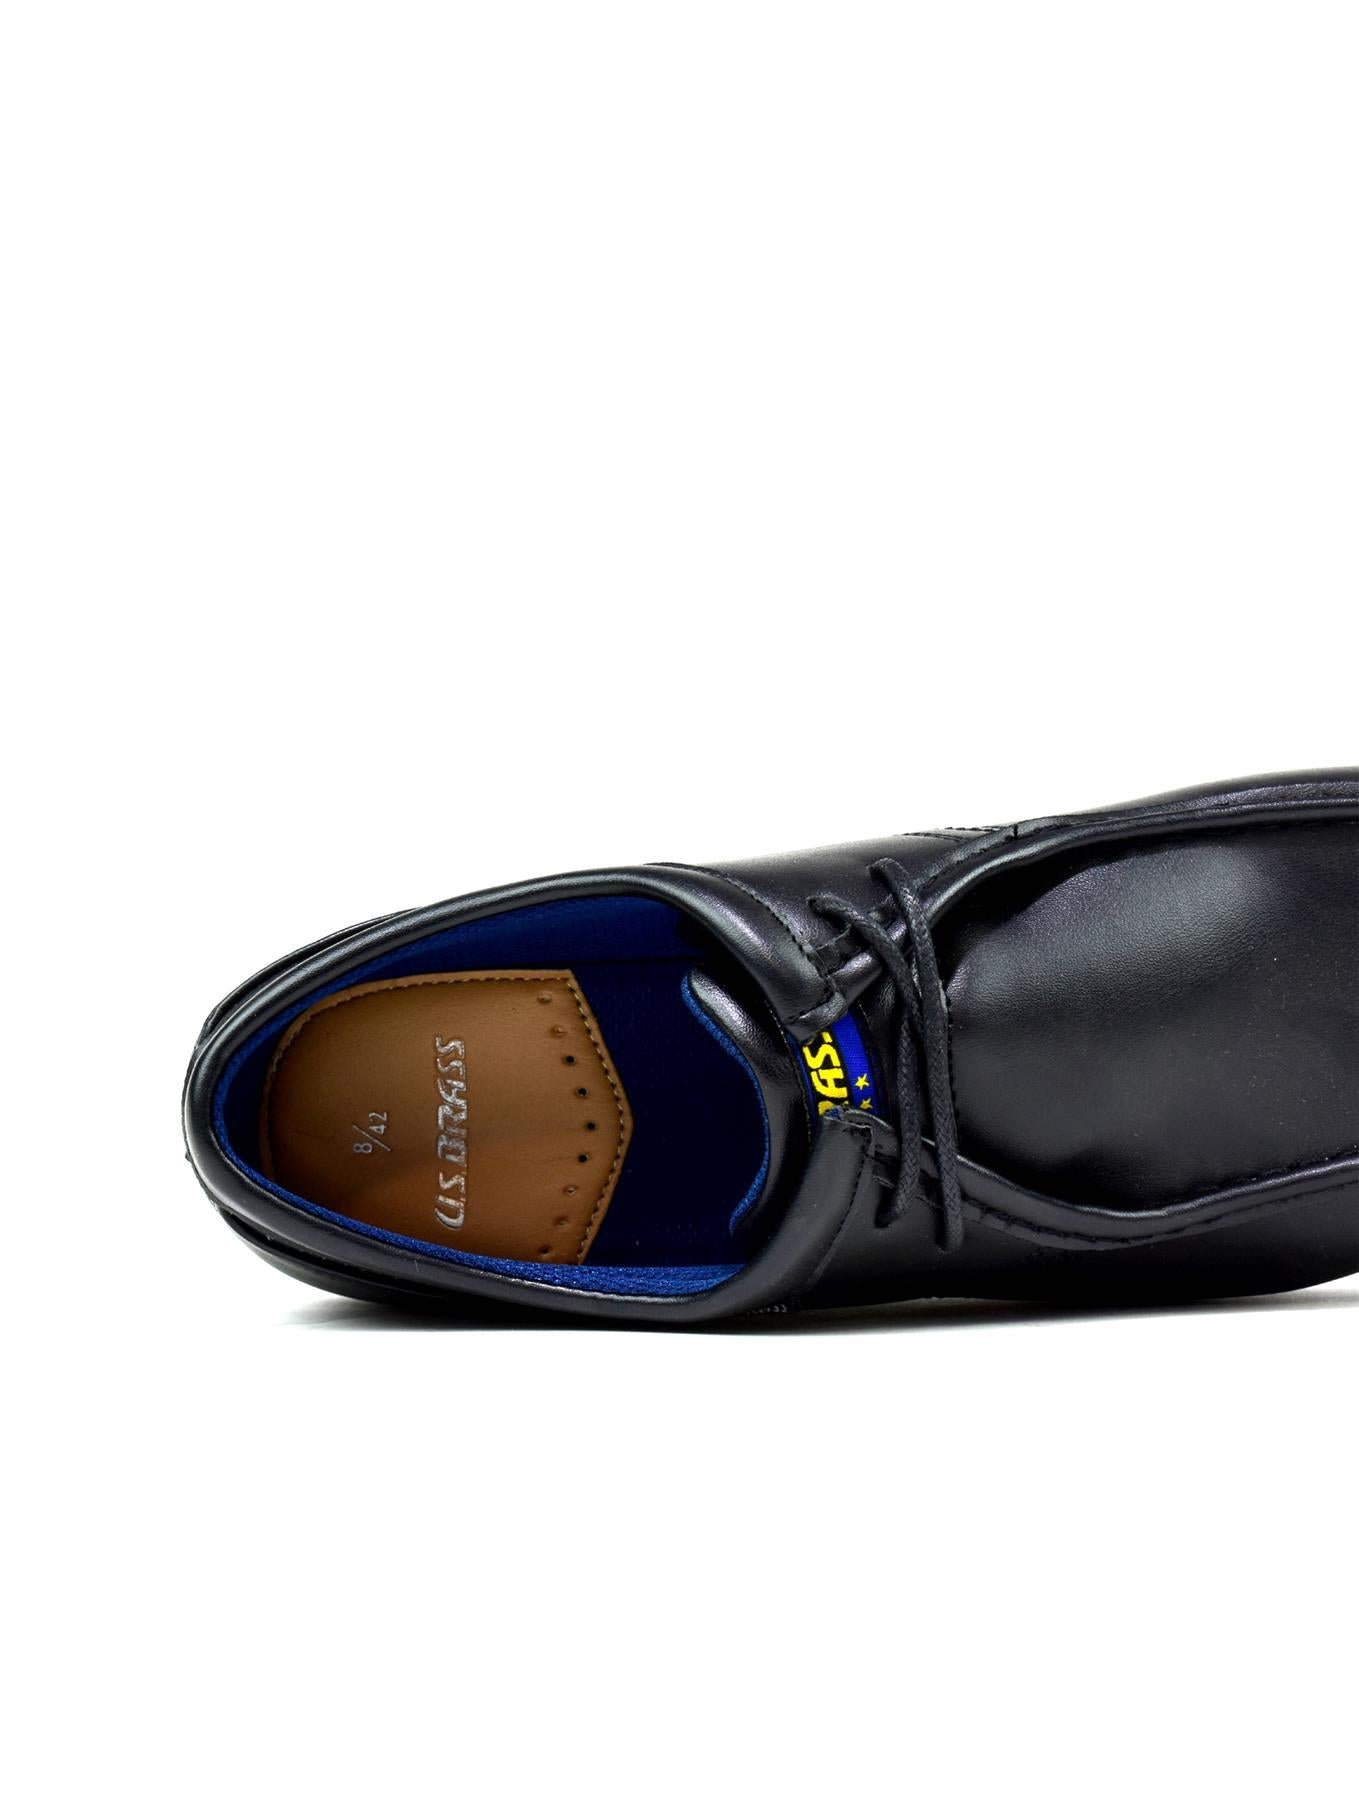 English black shoes